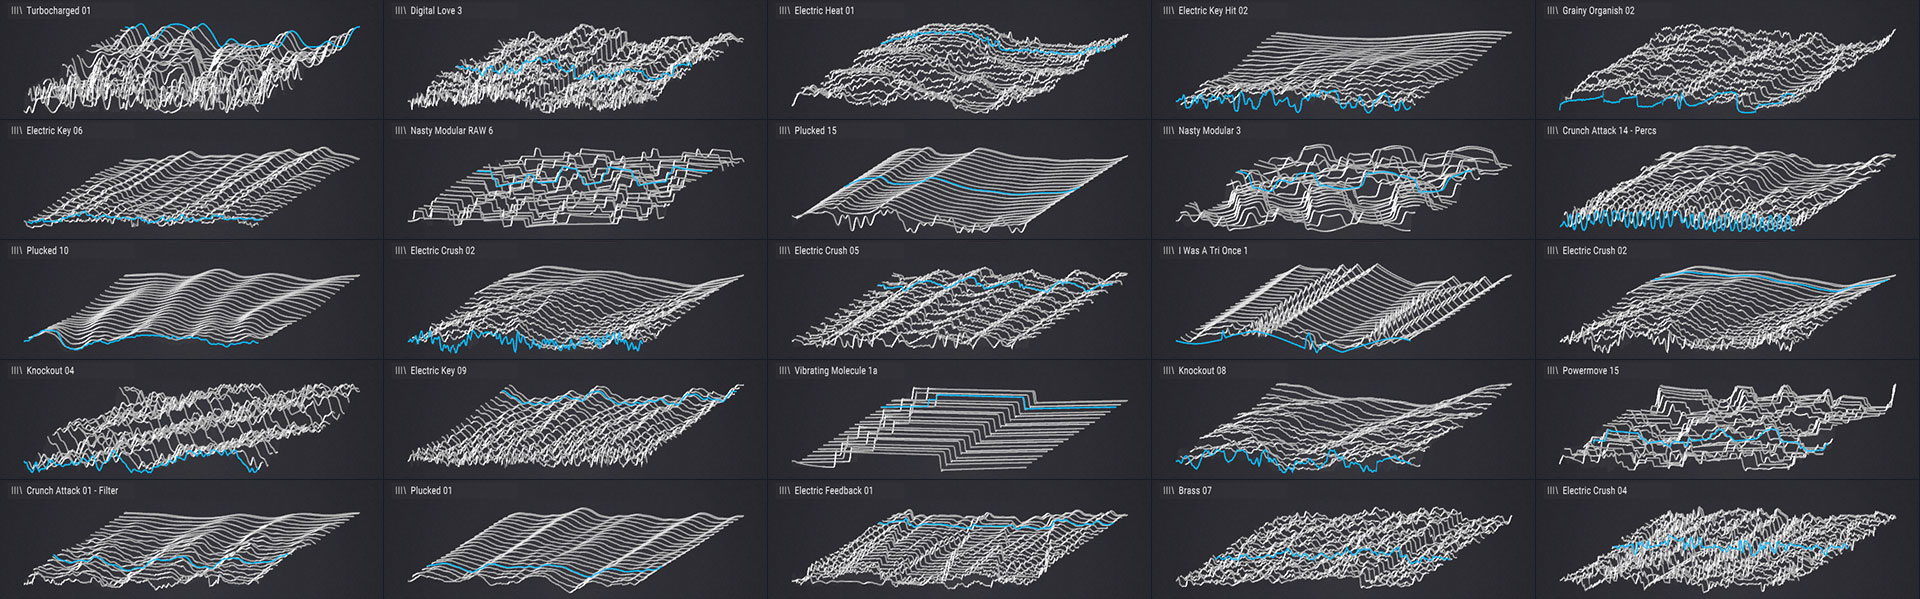 collage of custom wavetables utilized in designing sparkpackers pigments presets